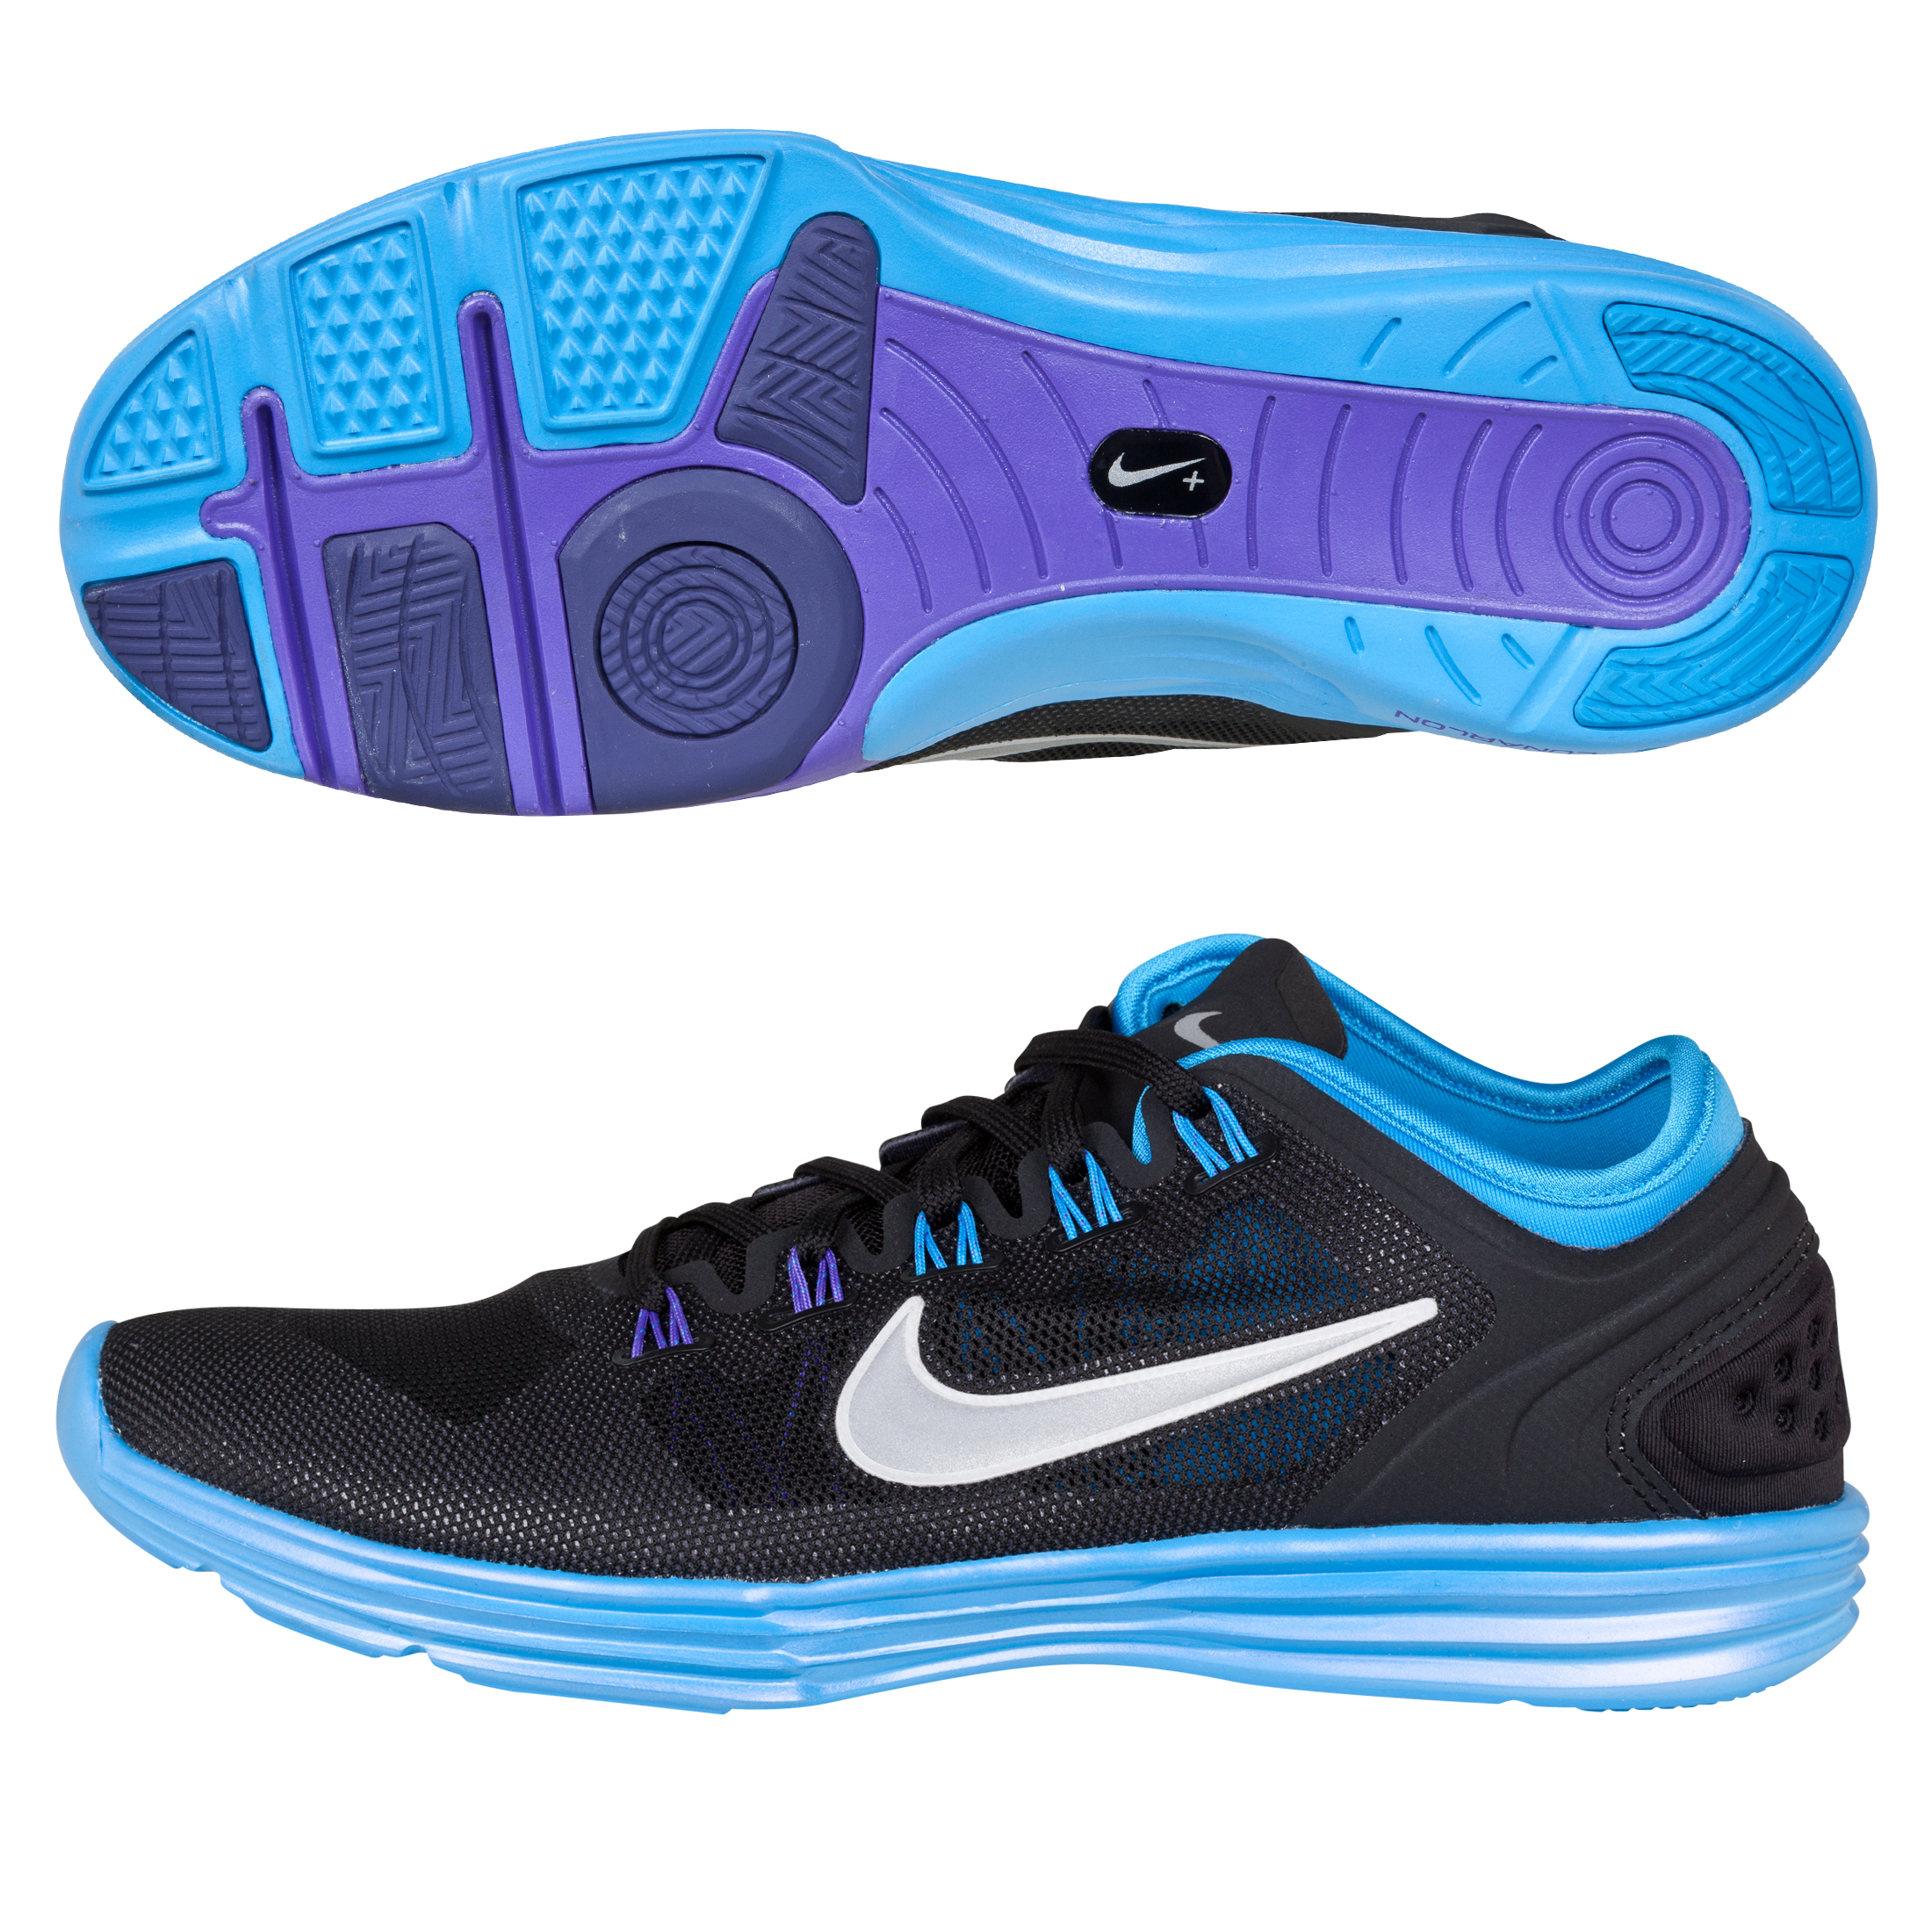 Nike Lunarhyperworkout - Black/Silver/Blue - Womens